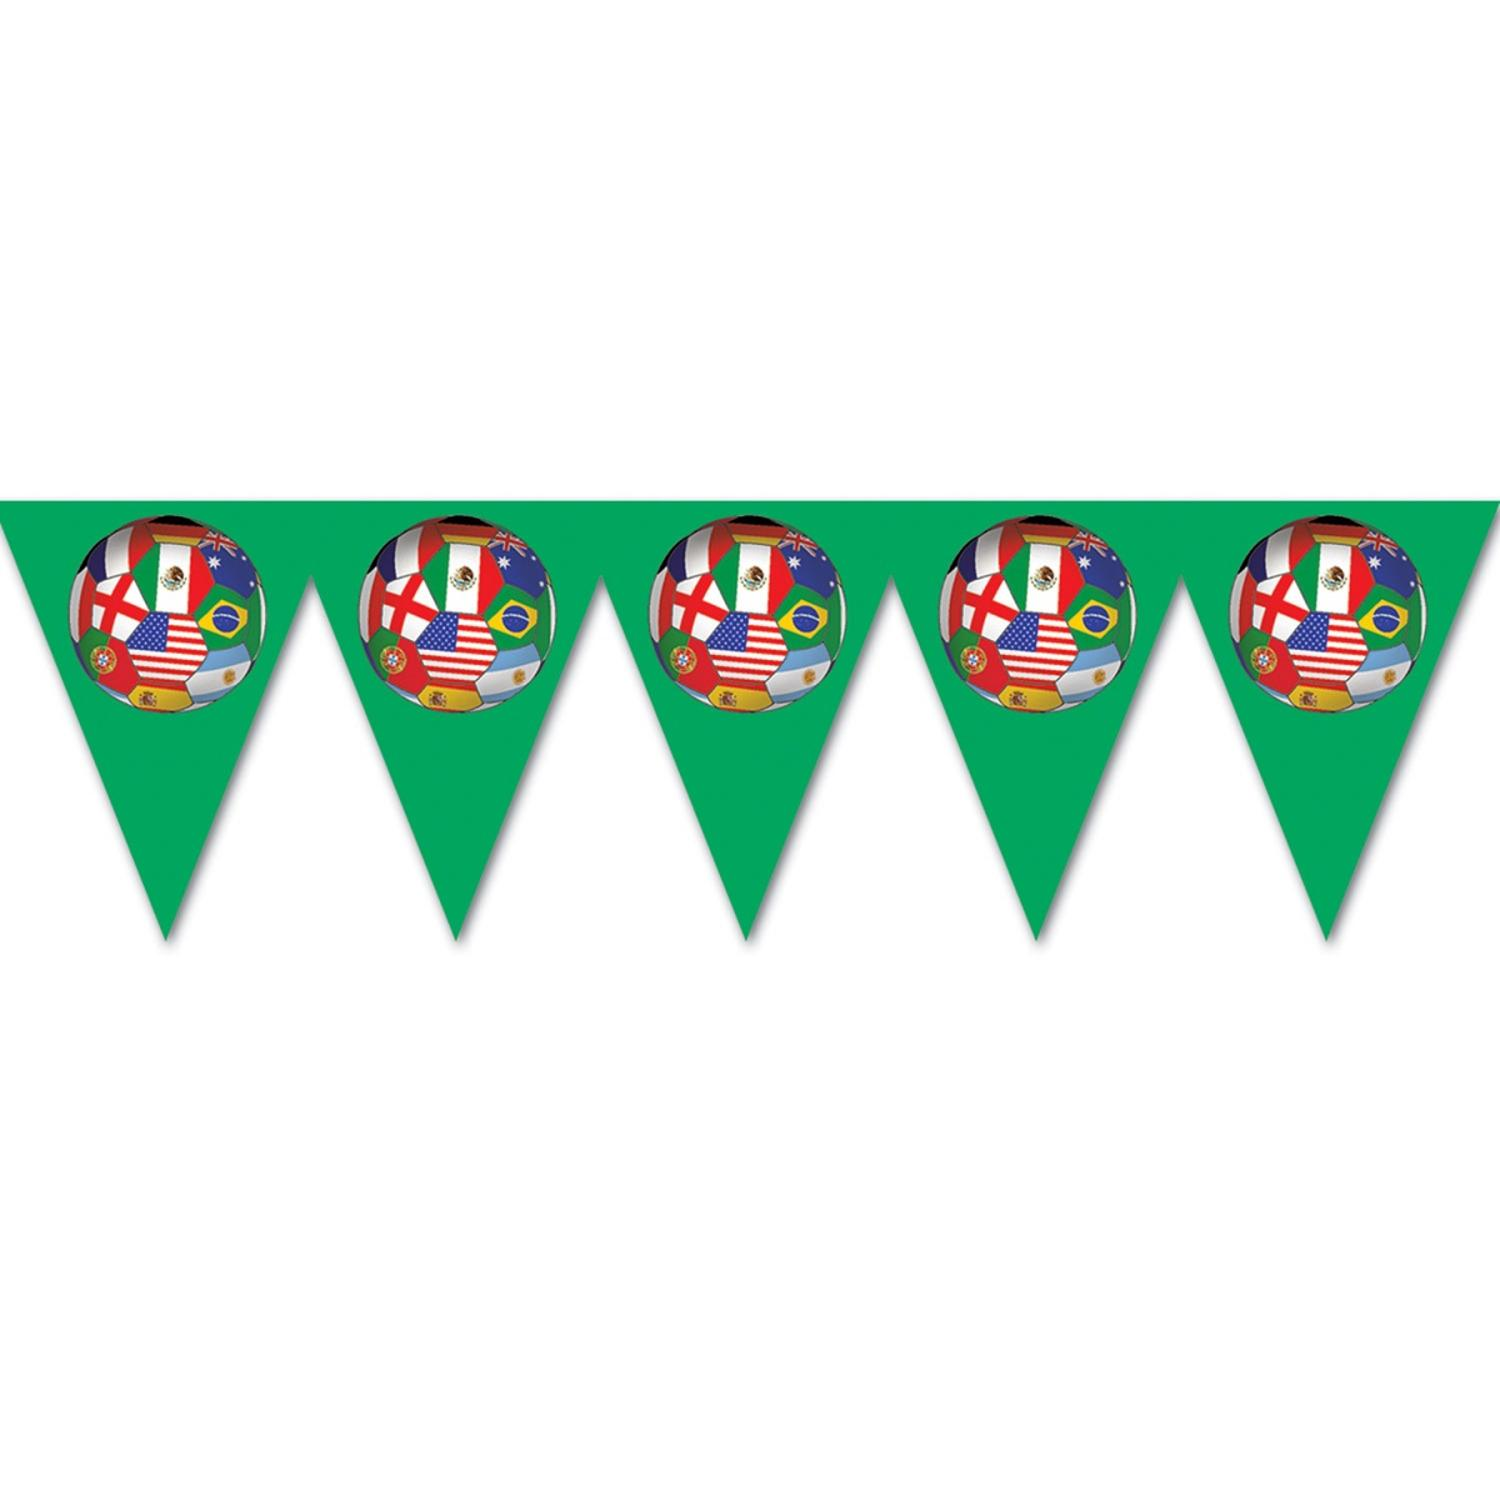 Pack of 6 Multi-Colored International Sports Soccer Themed Pennant Banner Party Decorations 7.4'